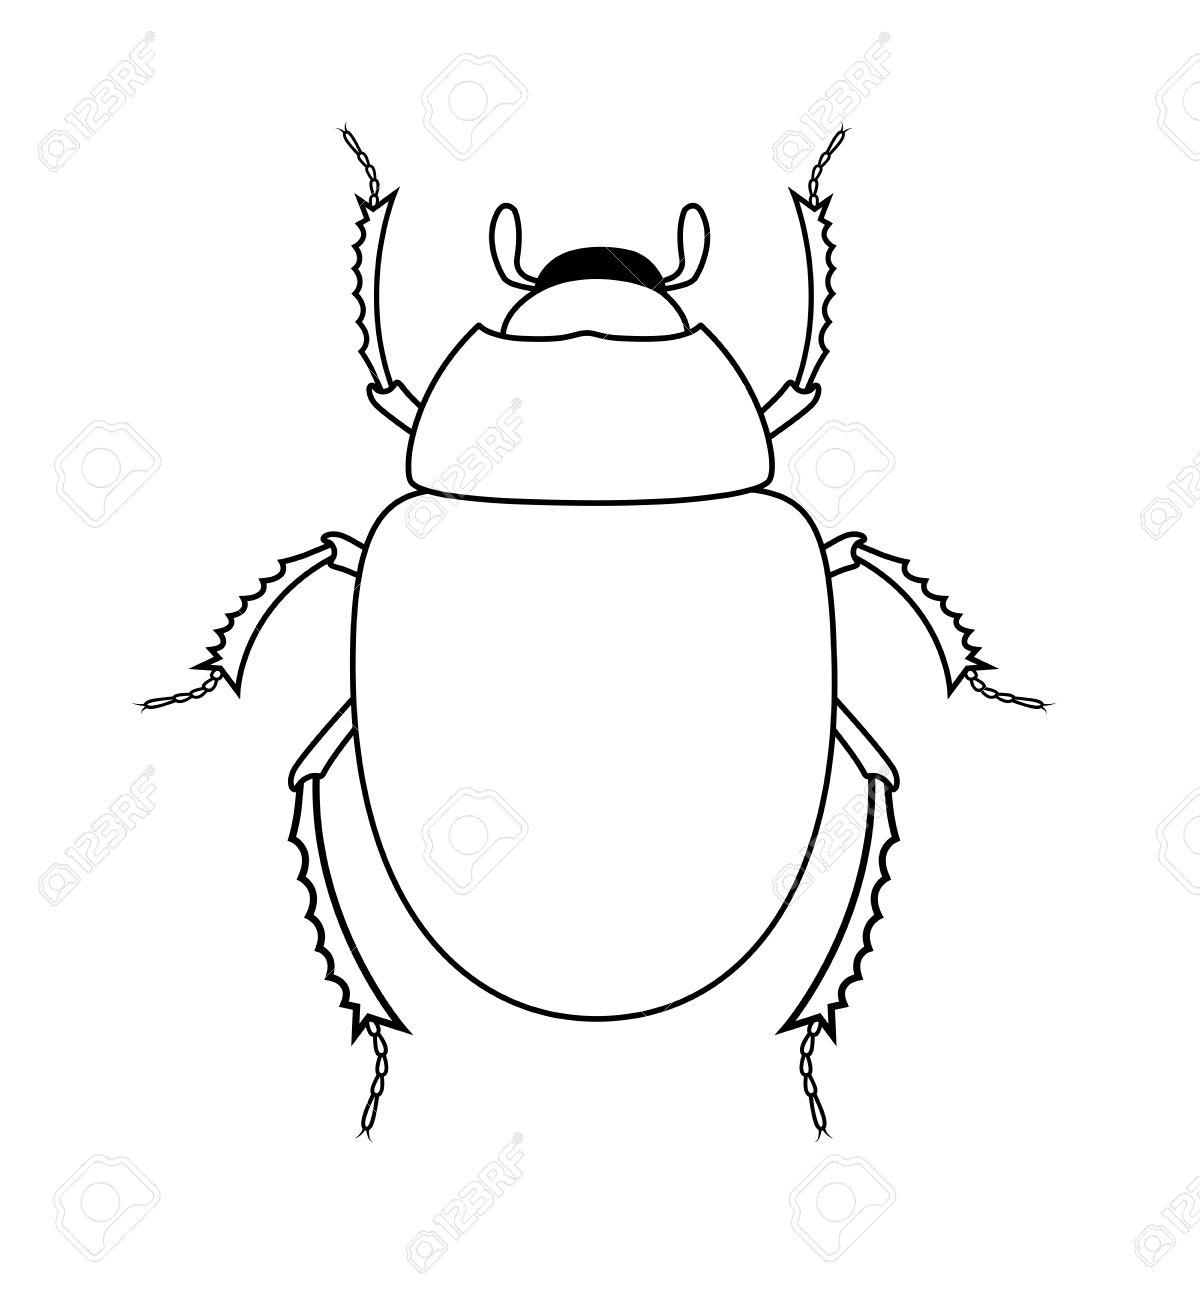 drawing art of scarab beetle insect royalty free cliparts vectors